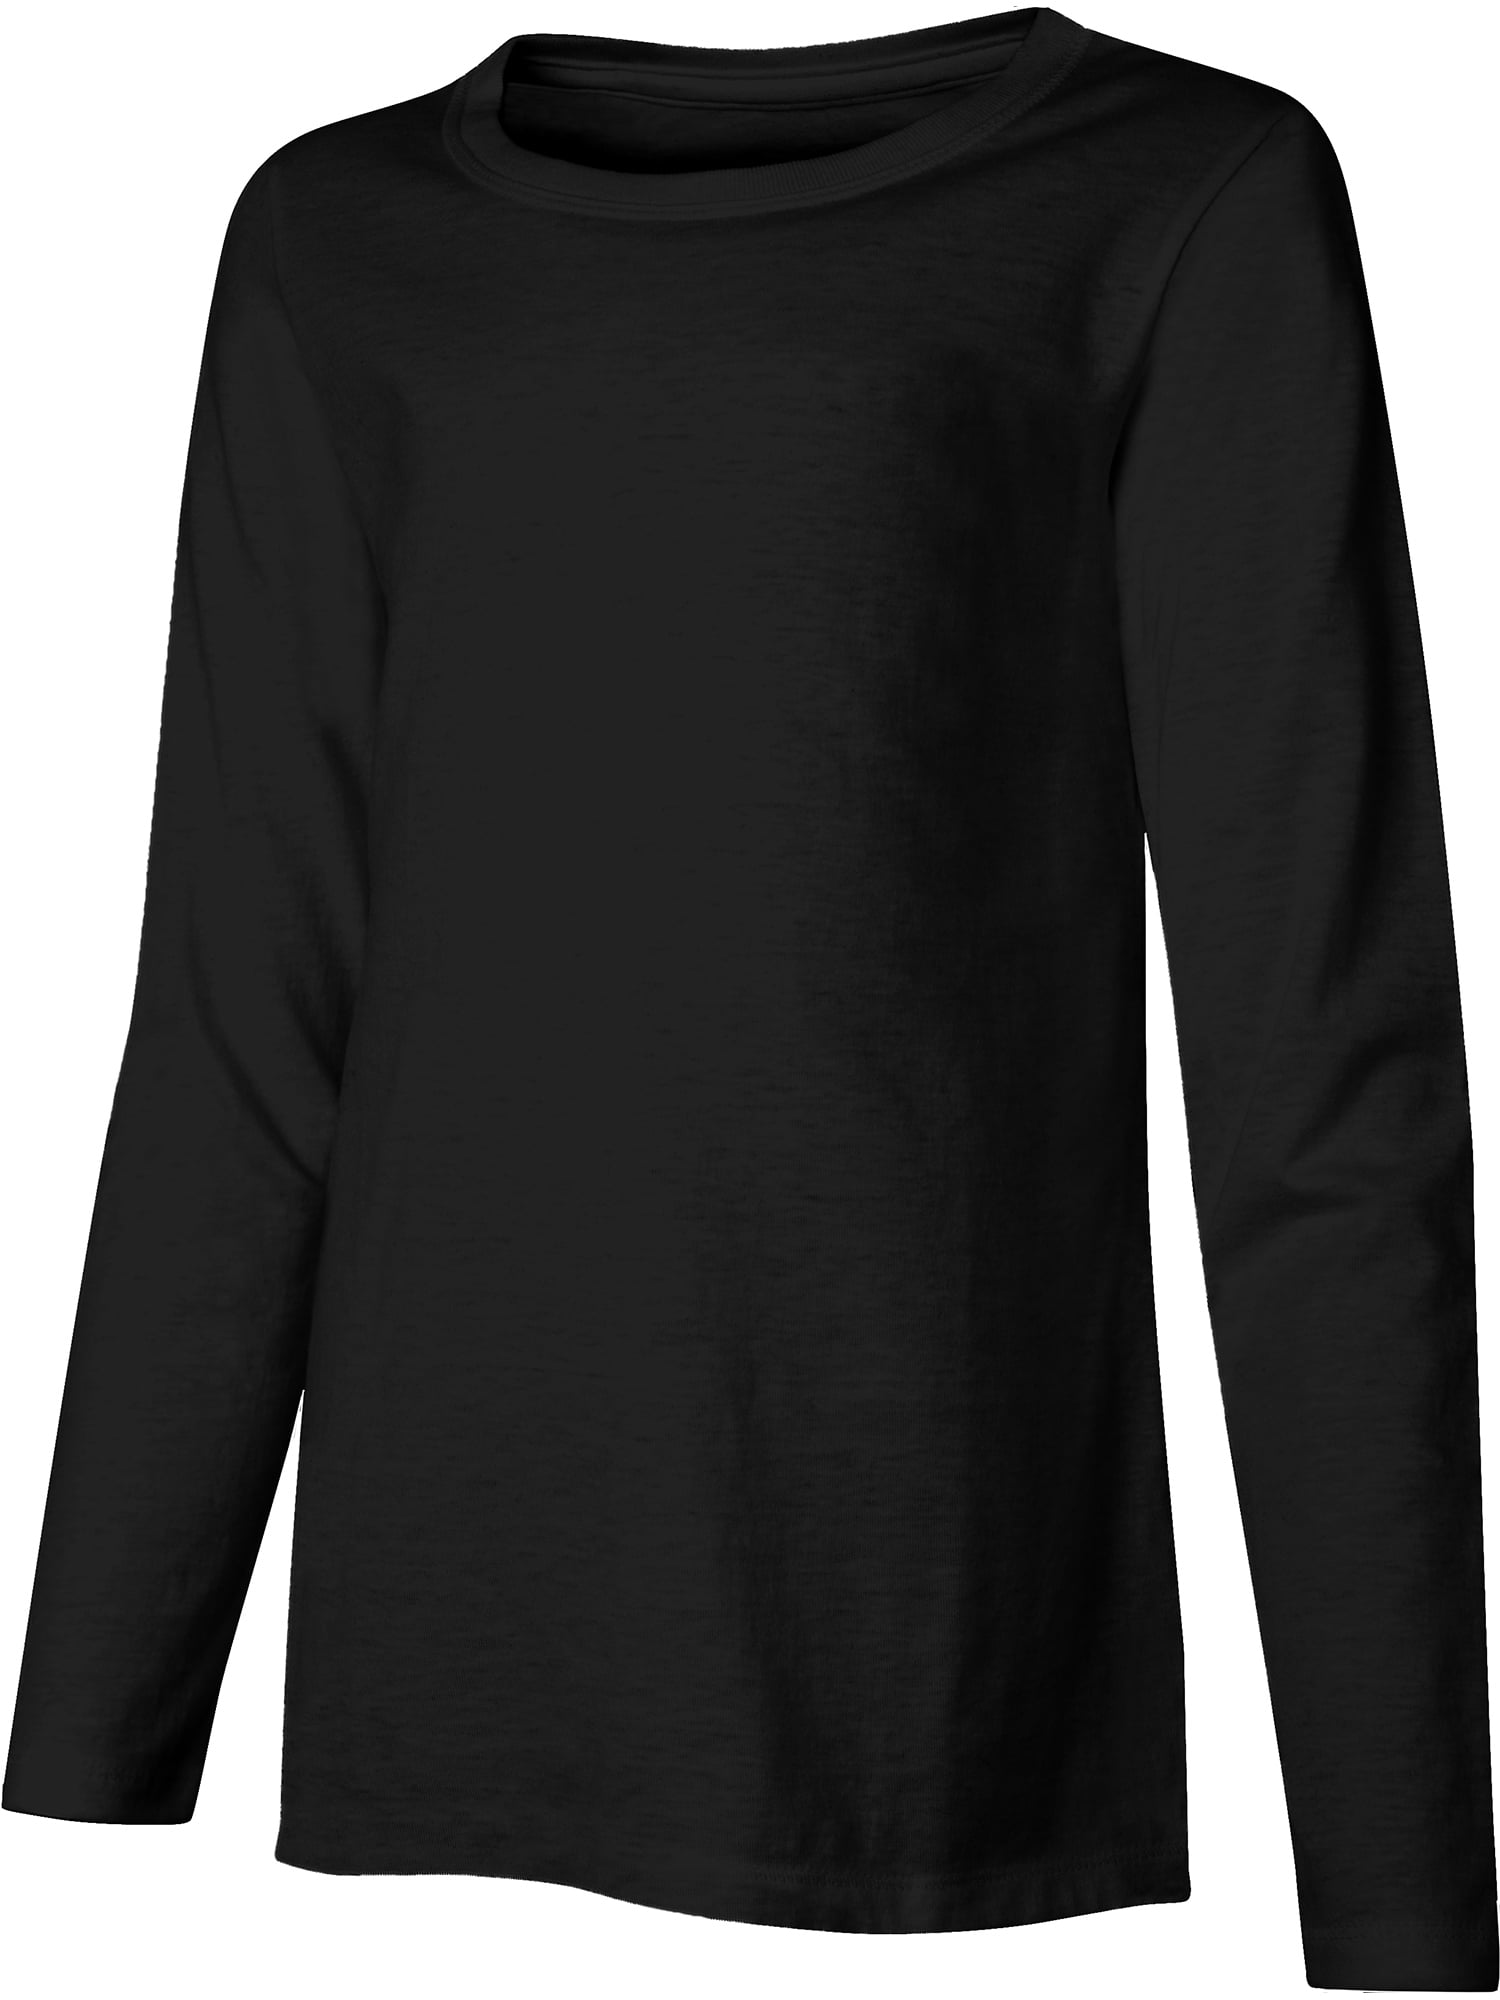 Hamilton an American Musical Cotton Crew Neck Long Sleeve Graphic T-Shirt for Teens Boys Girls